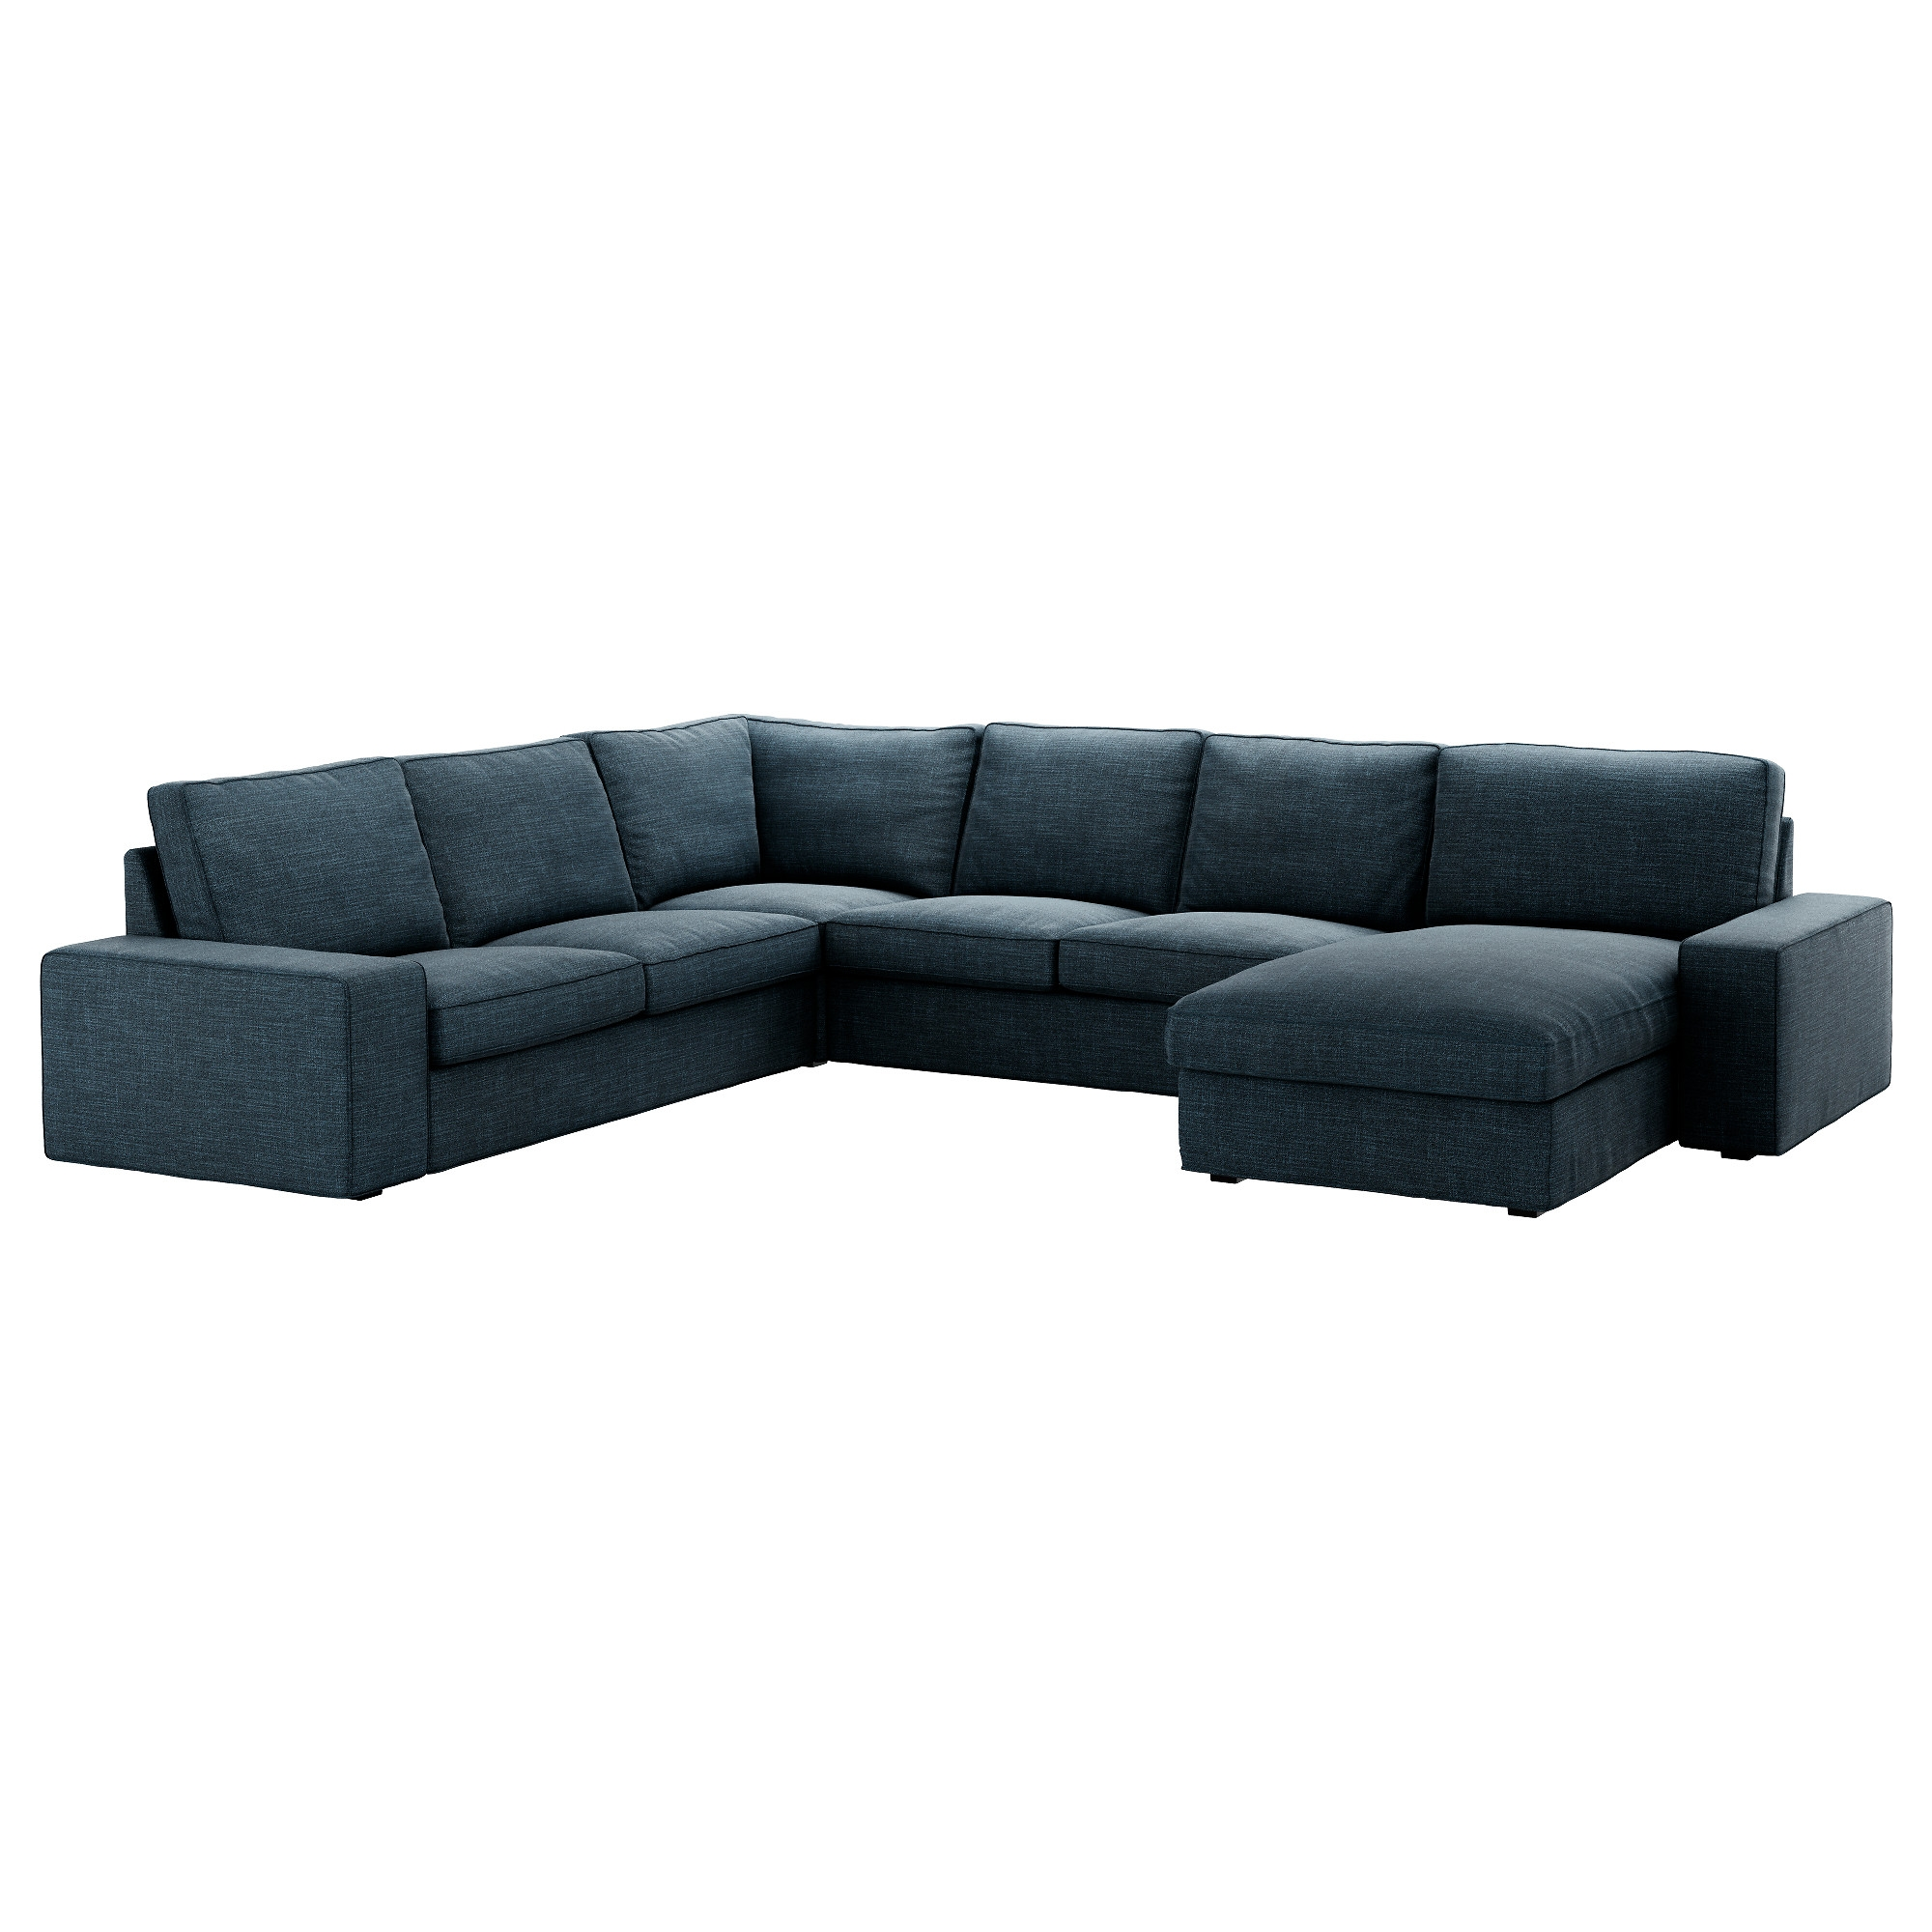 Sectional Sofas Couches Ikea Within Angled Chaise Sofa (Image 13 of 15)